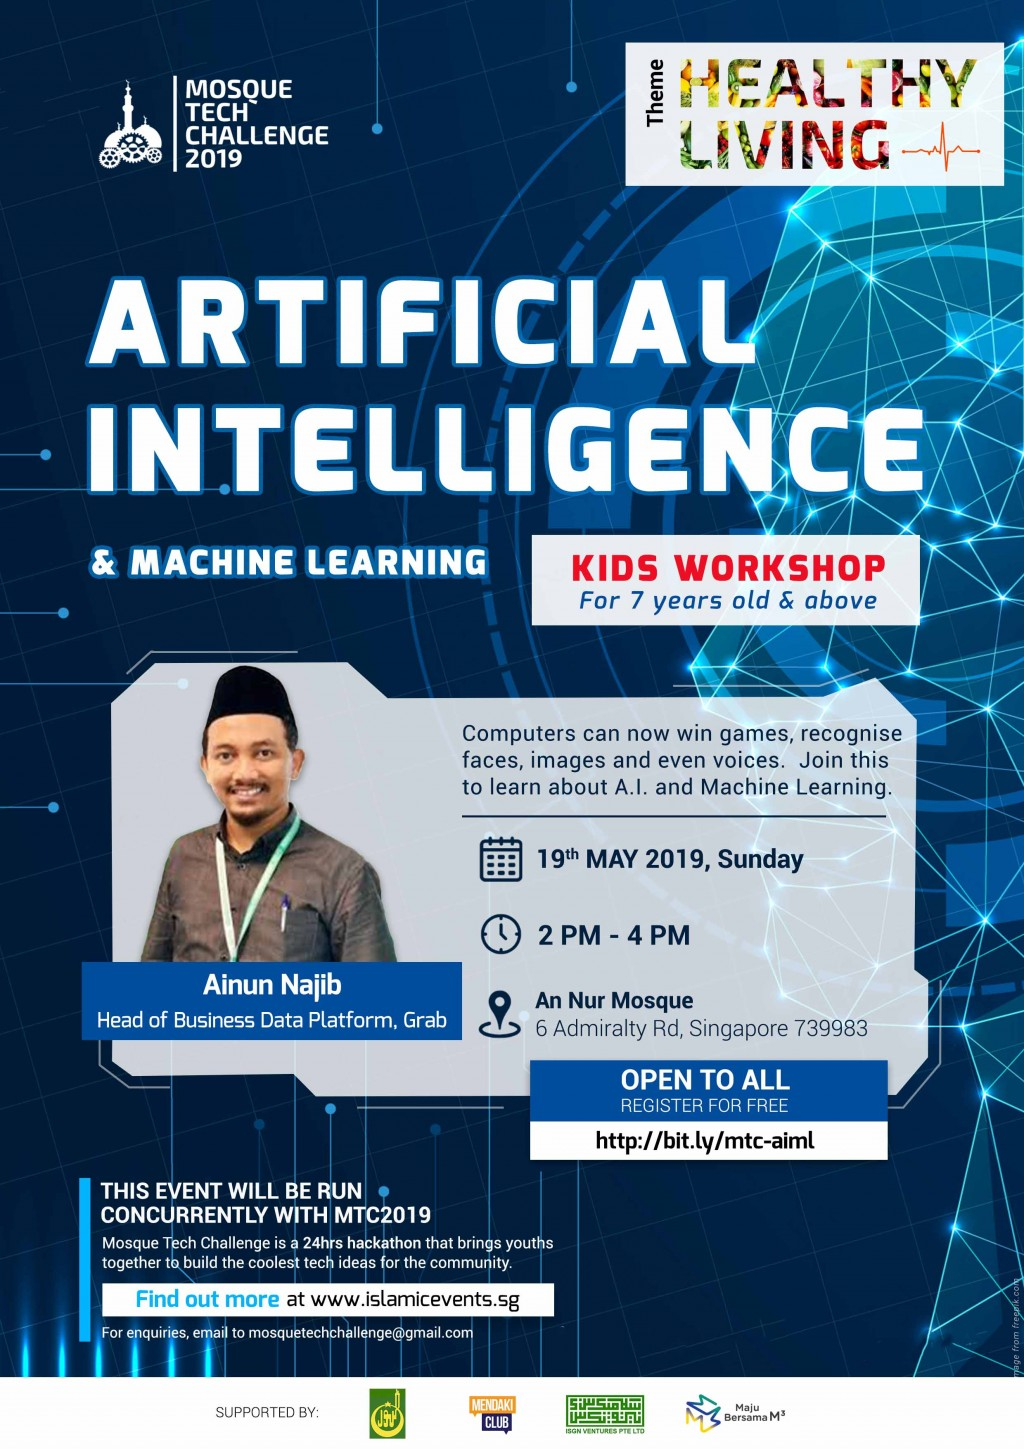 Artificial Intelligence Workshop for kids